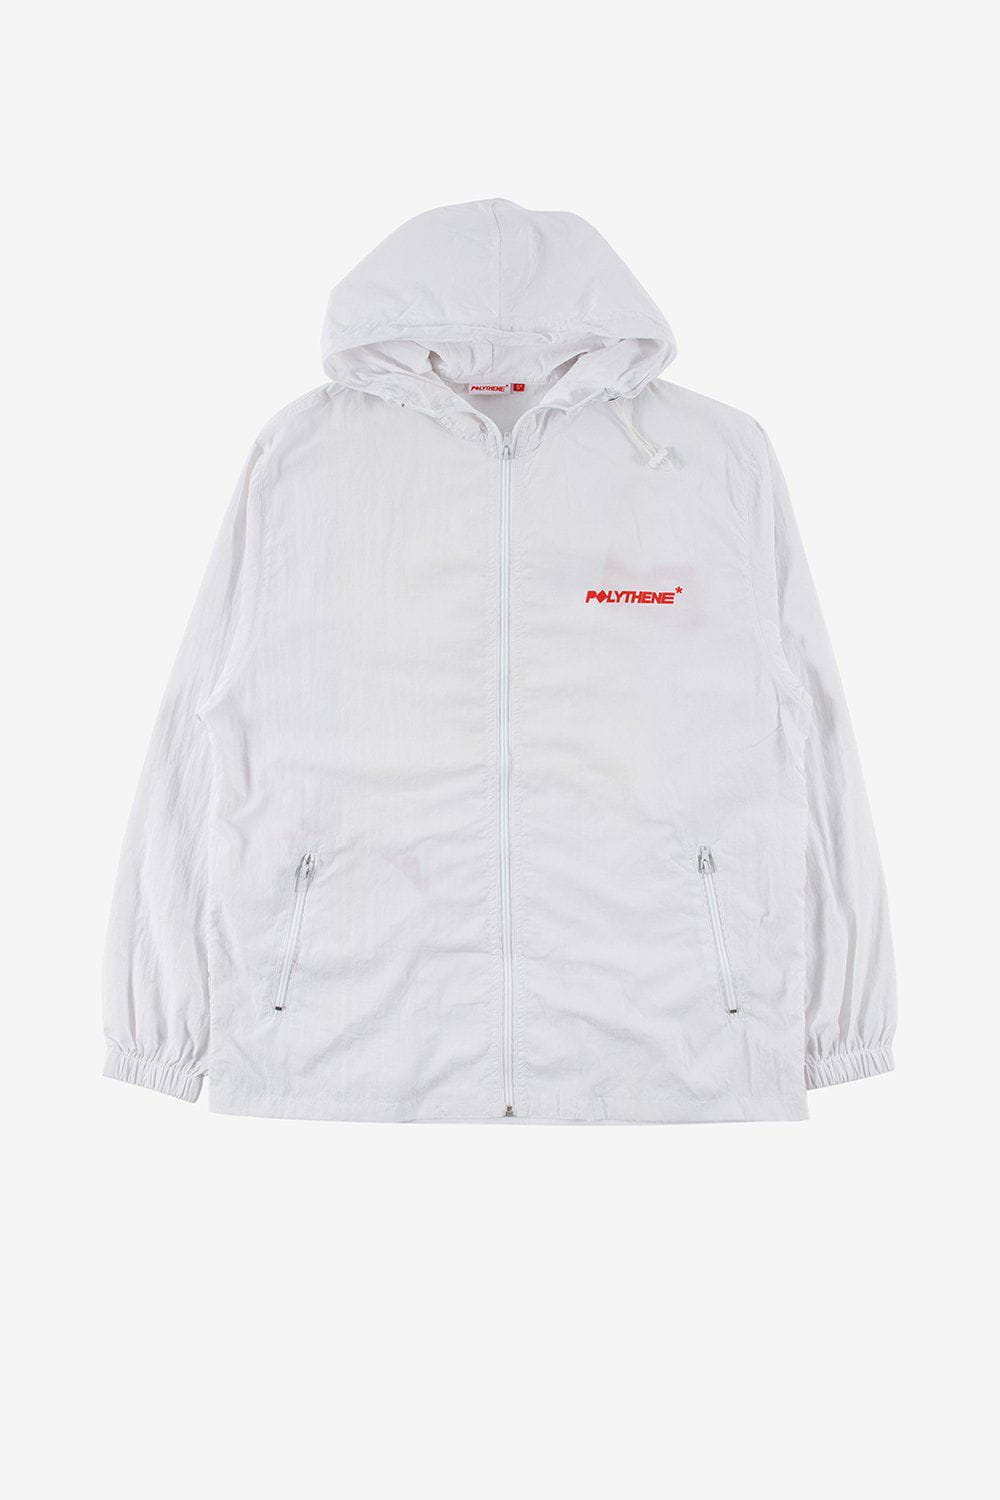 Polythene Optics Apparel Zipped Windbreaker Jacket White